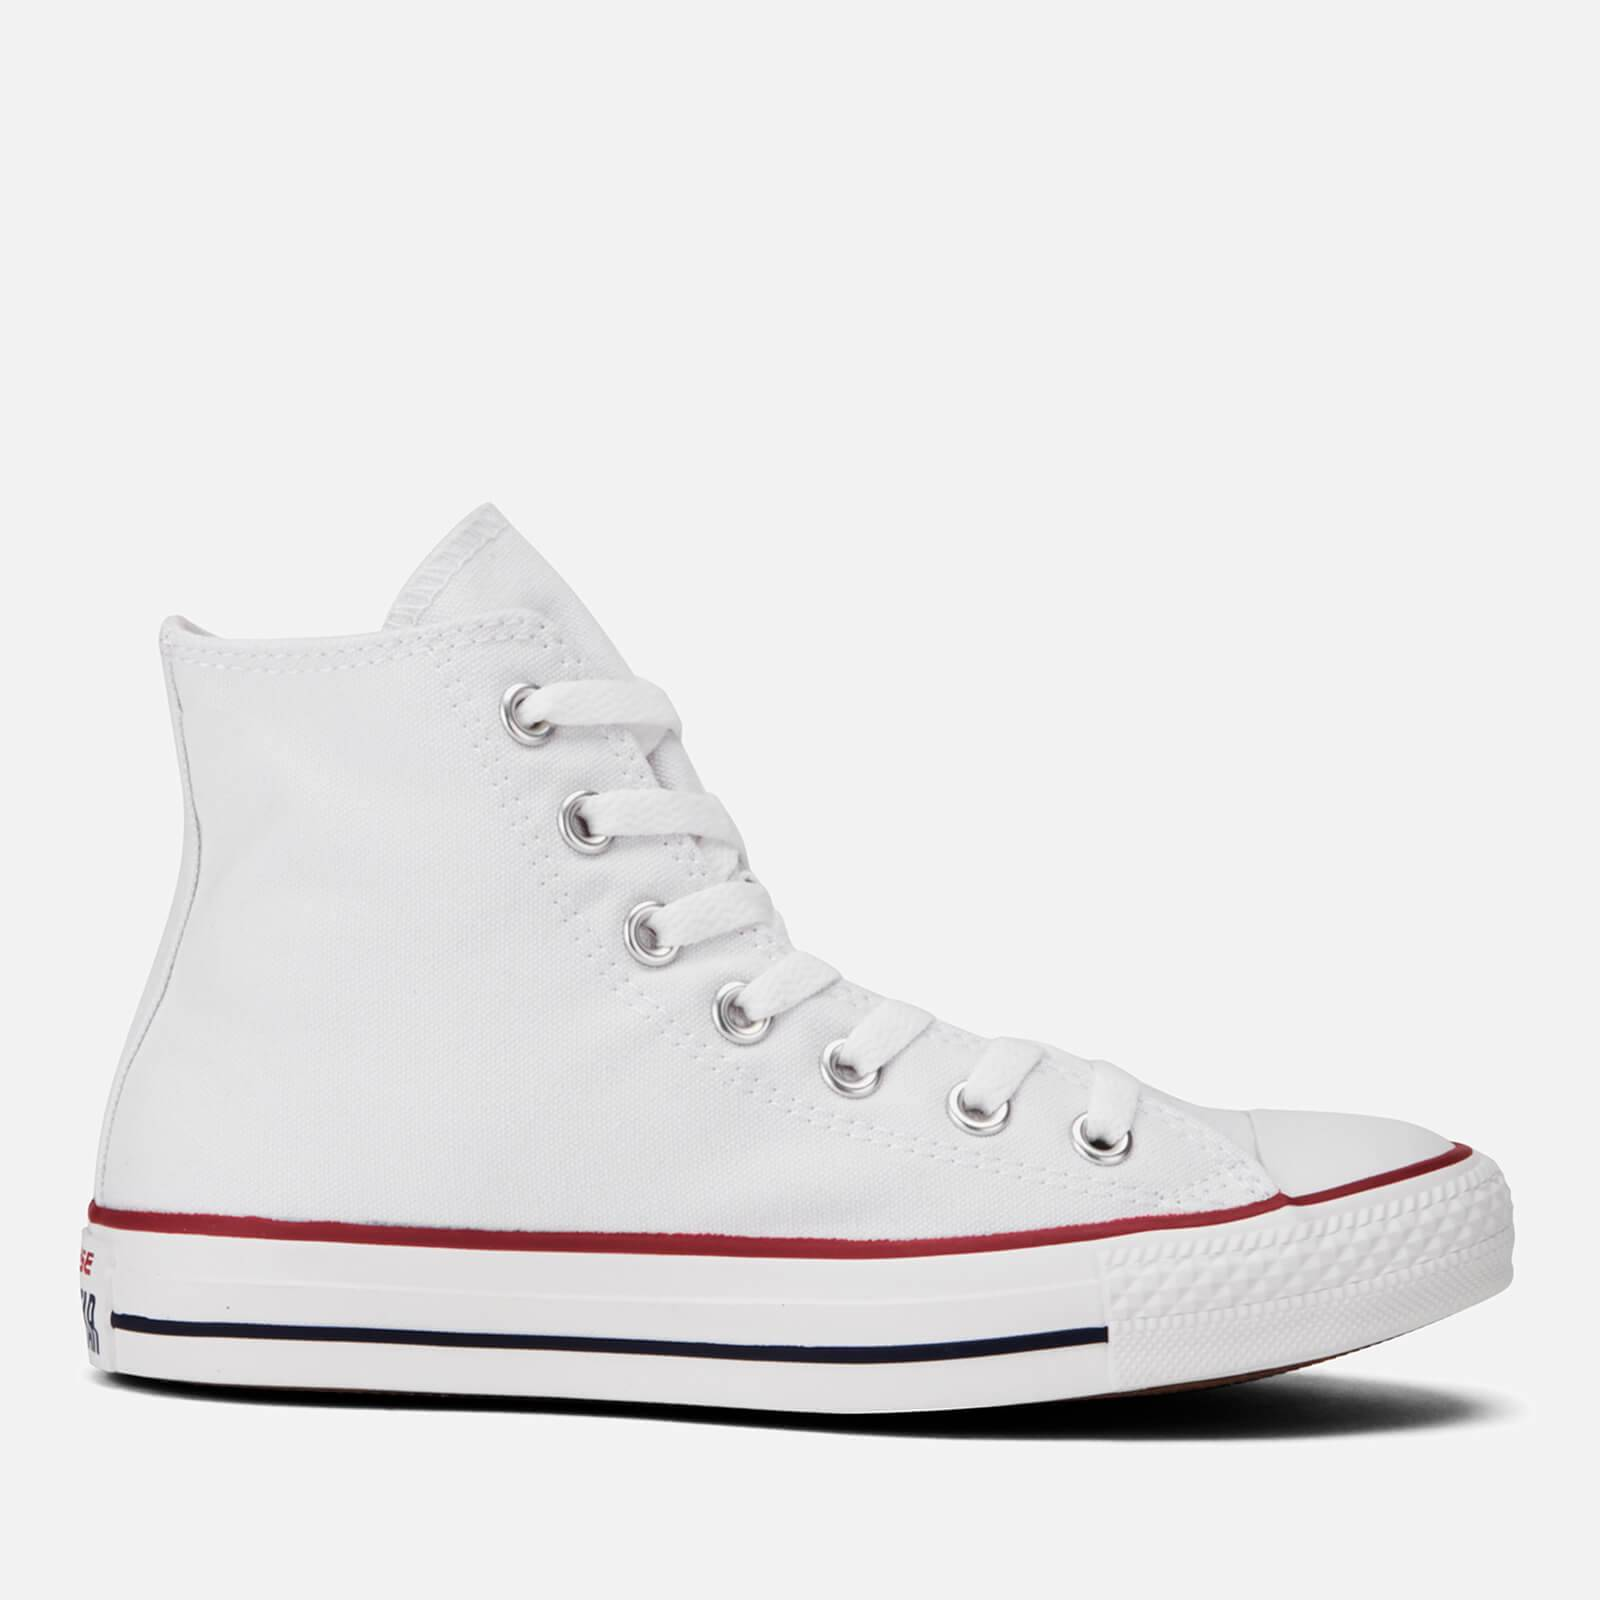 Converse Chuck Taylor All Star Hi-Top Trainers - Optical White - UK 10